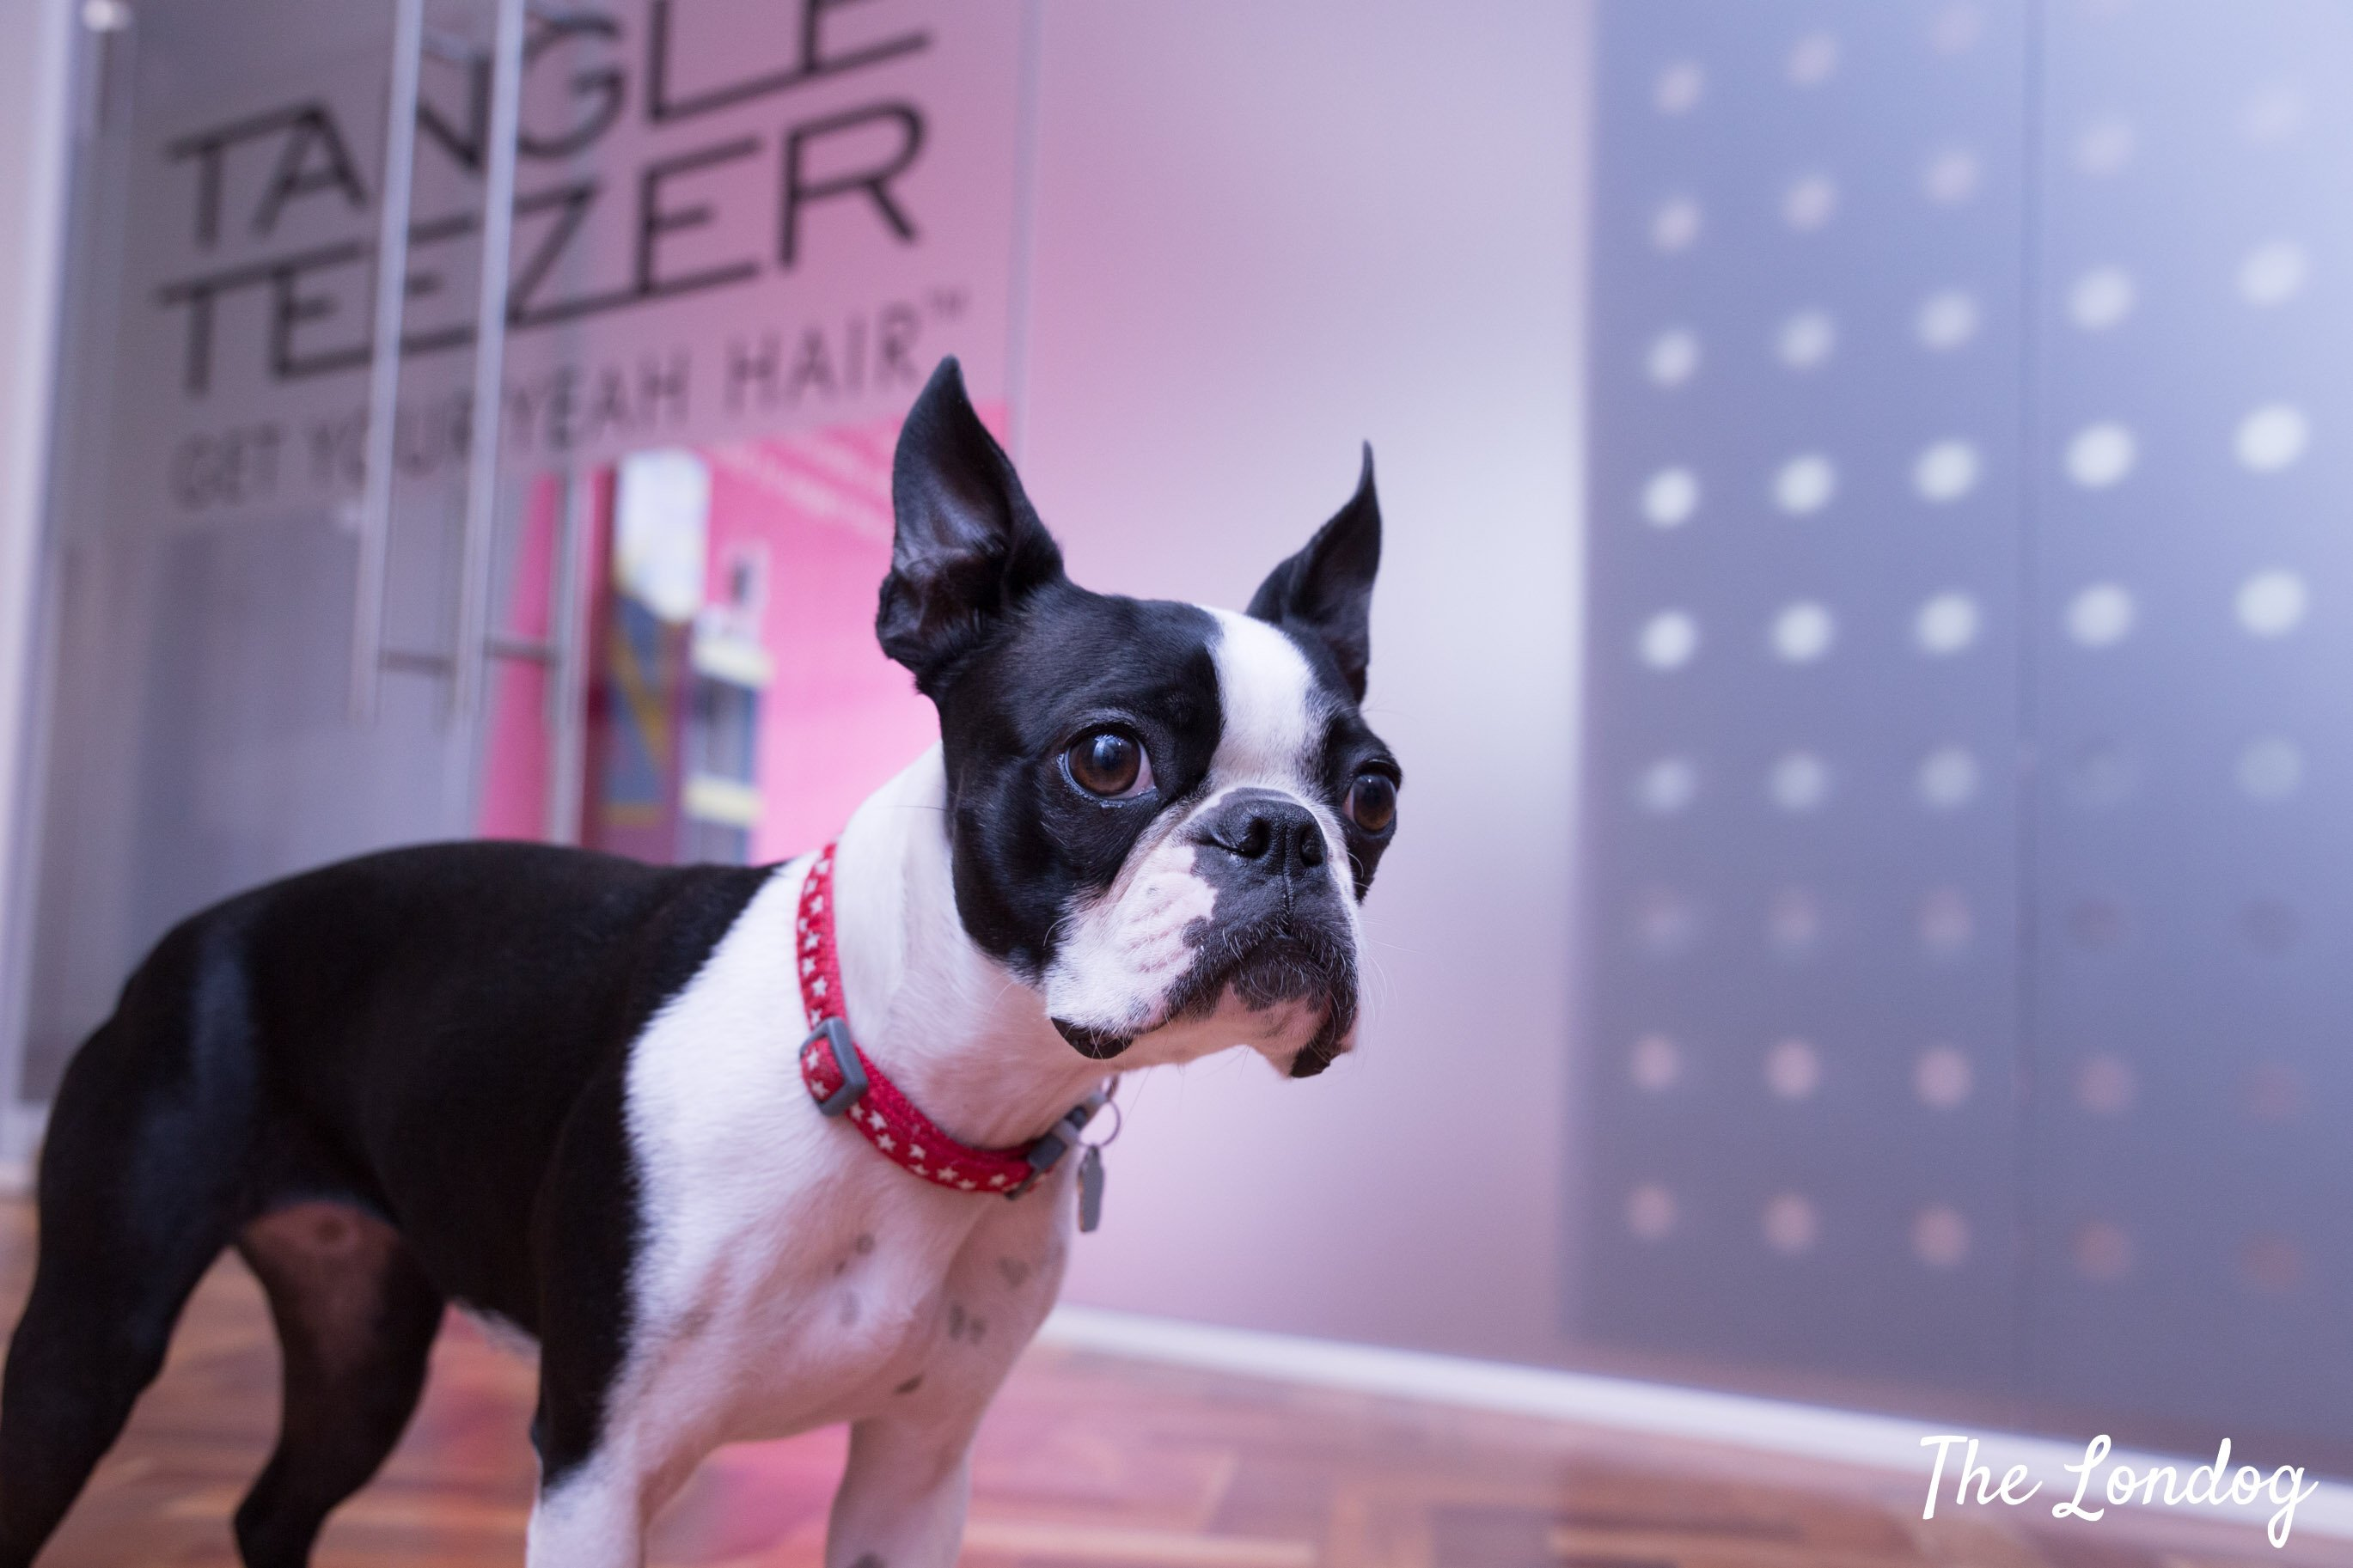 Boston Terrier office dog of Pet Teezer and Tangle Teezer at the office